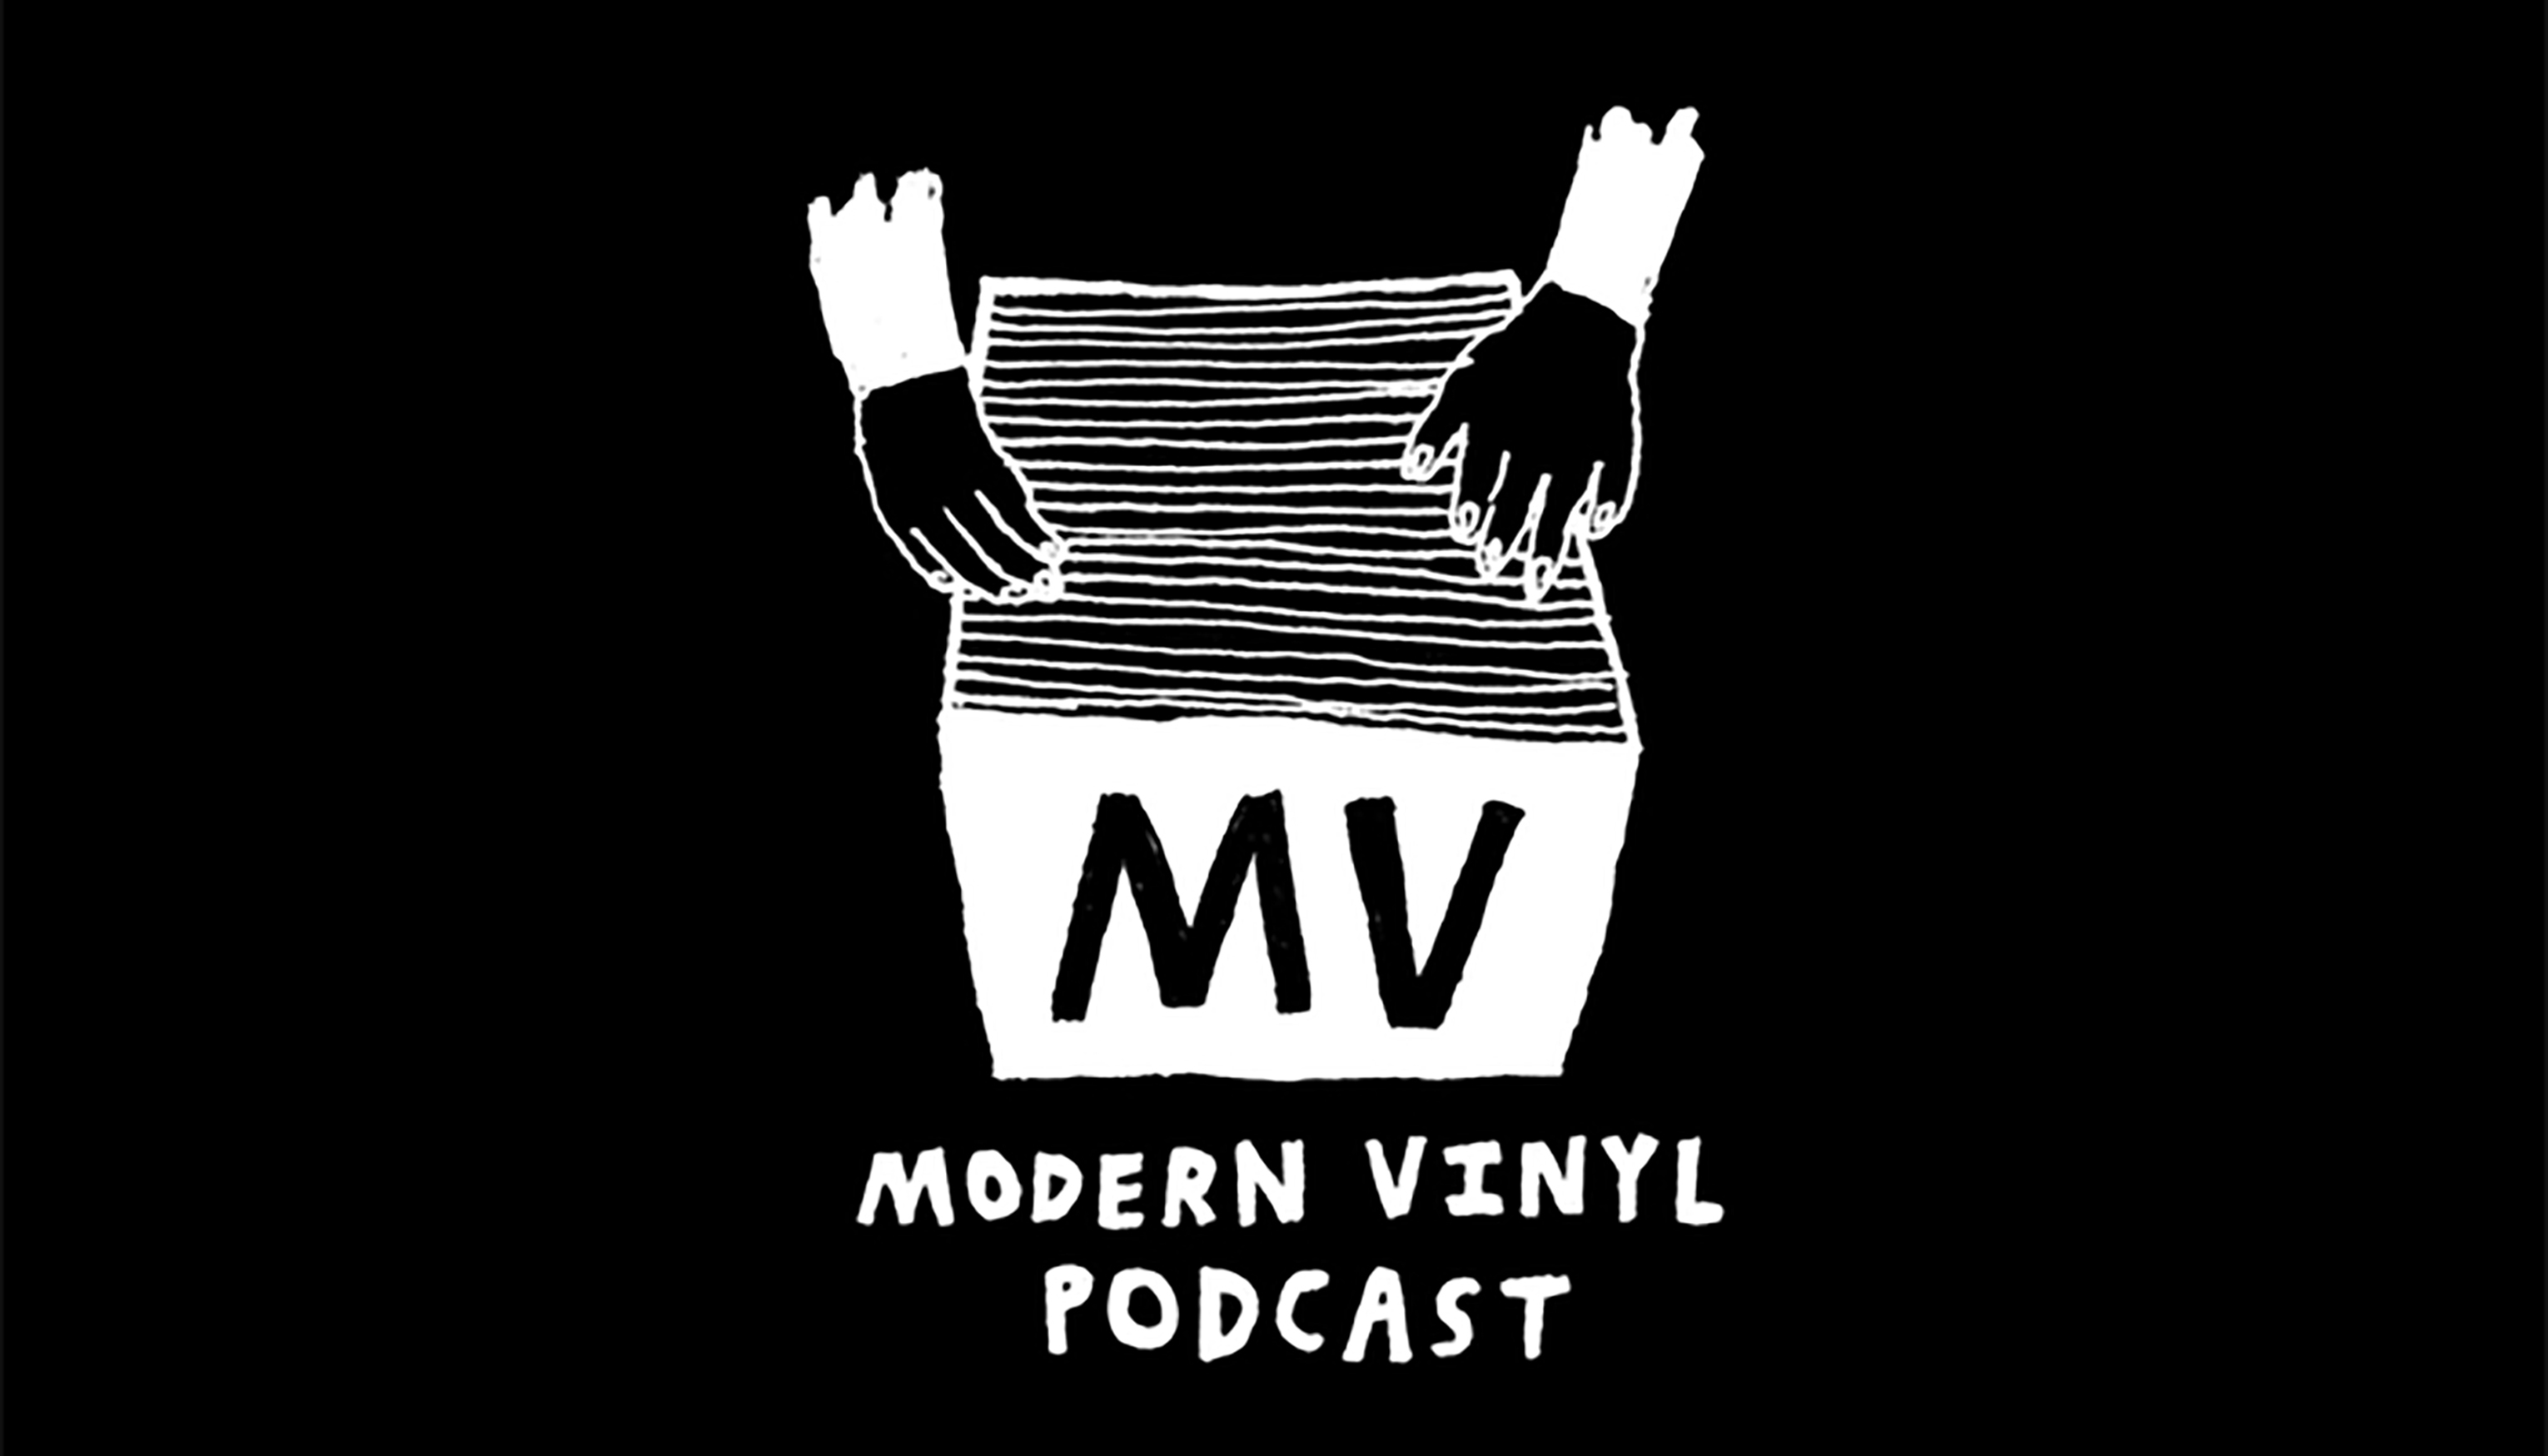 the mv podcast  clare norelli (  series) ‹ modern vinyl - the mv podcast  clare norelli (  series)